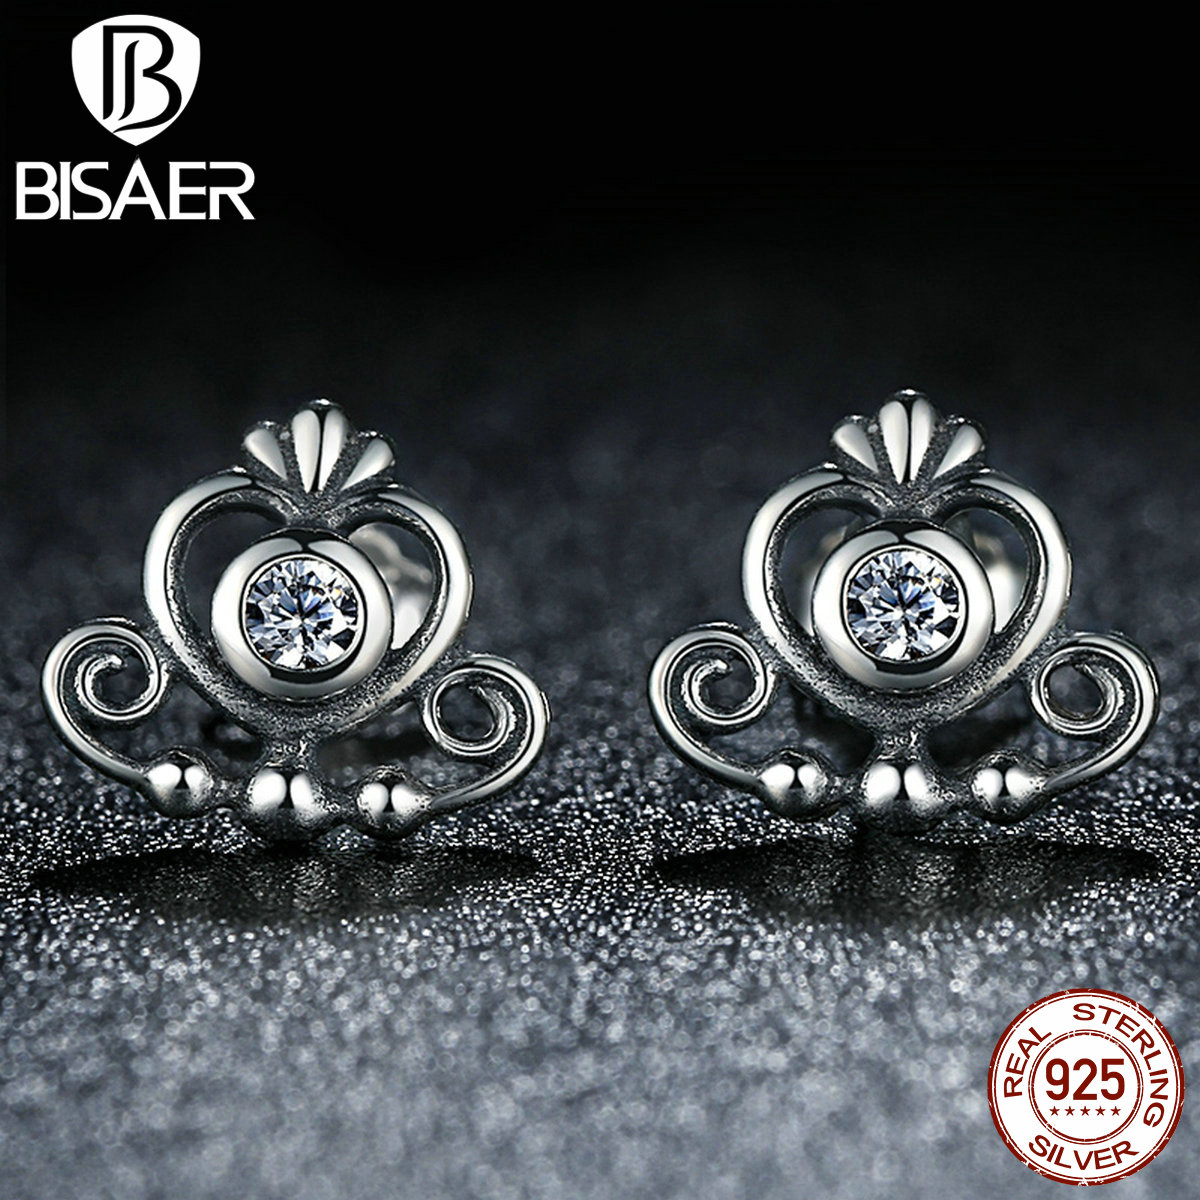 earrings princess silver sterling products cz crown ss clear teens for girls stud